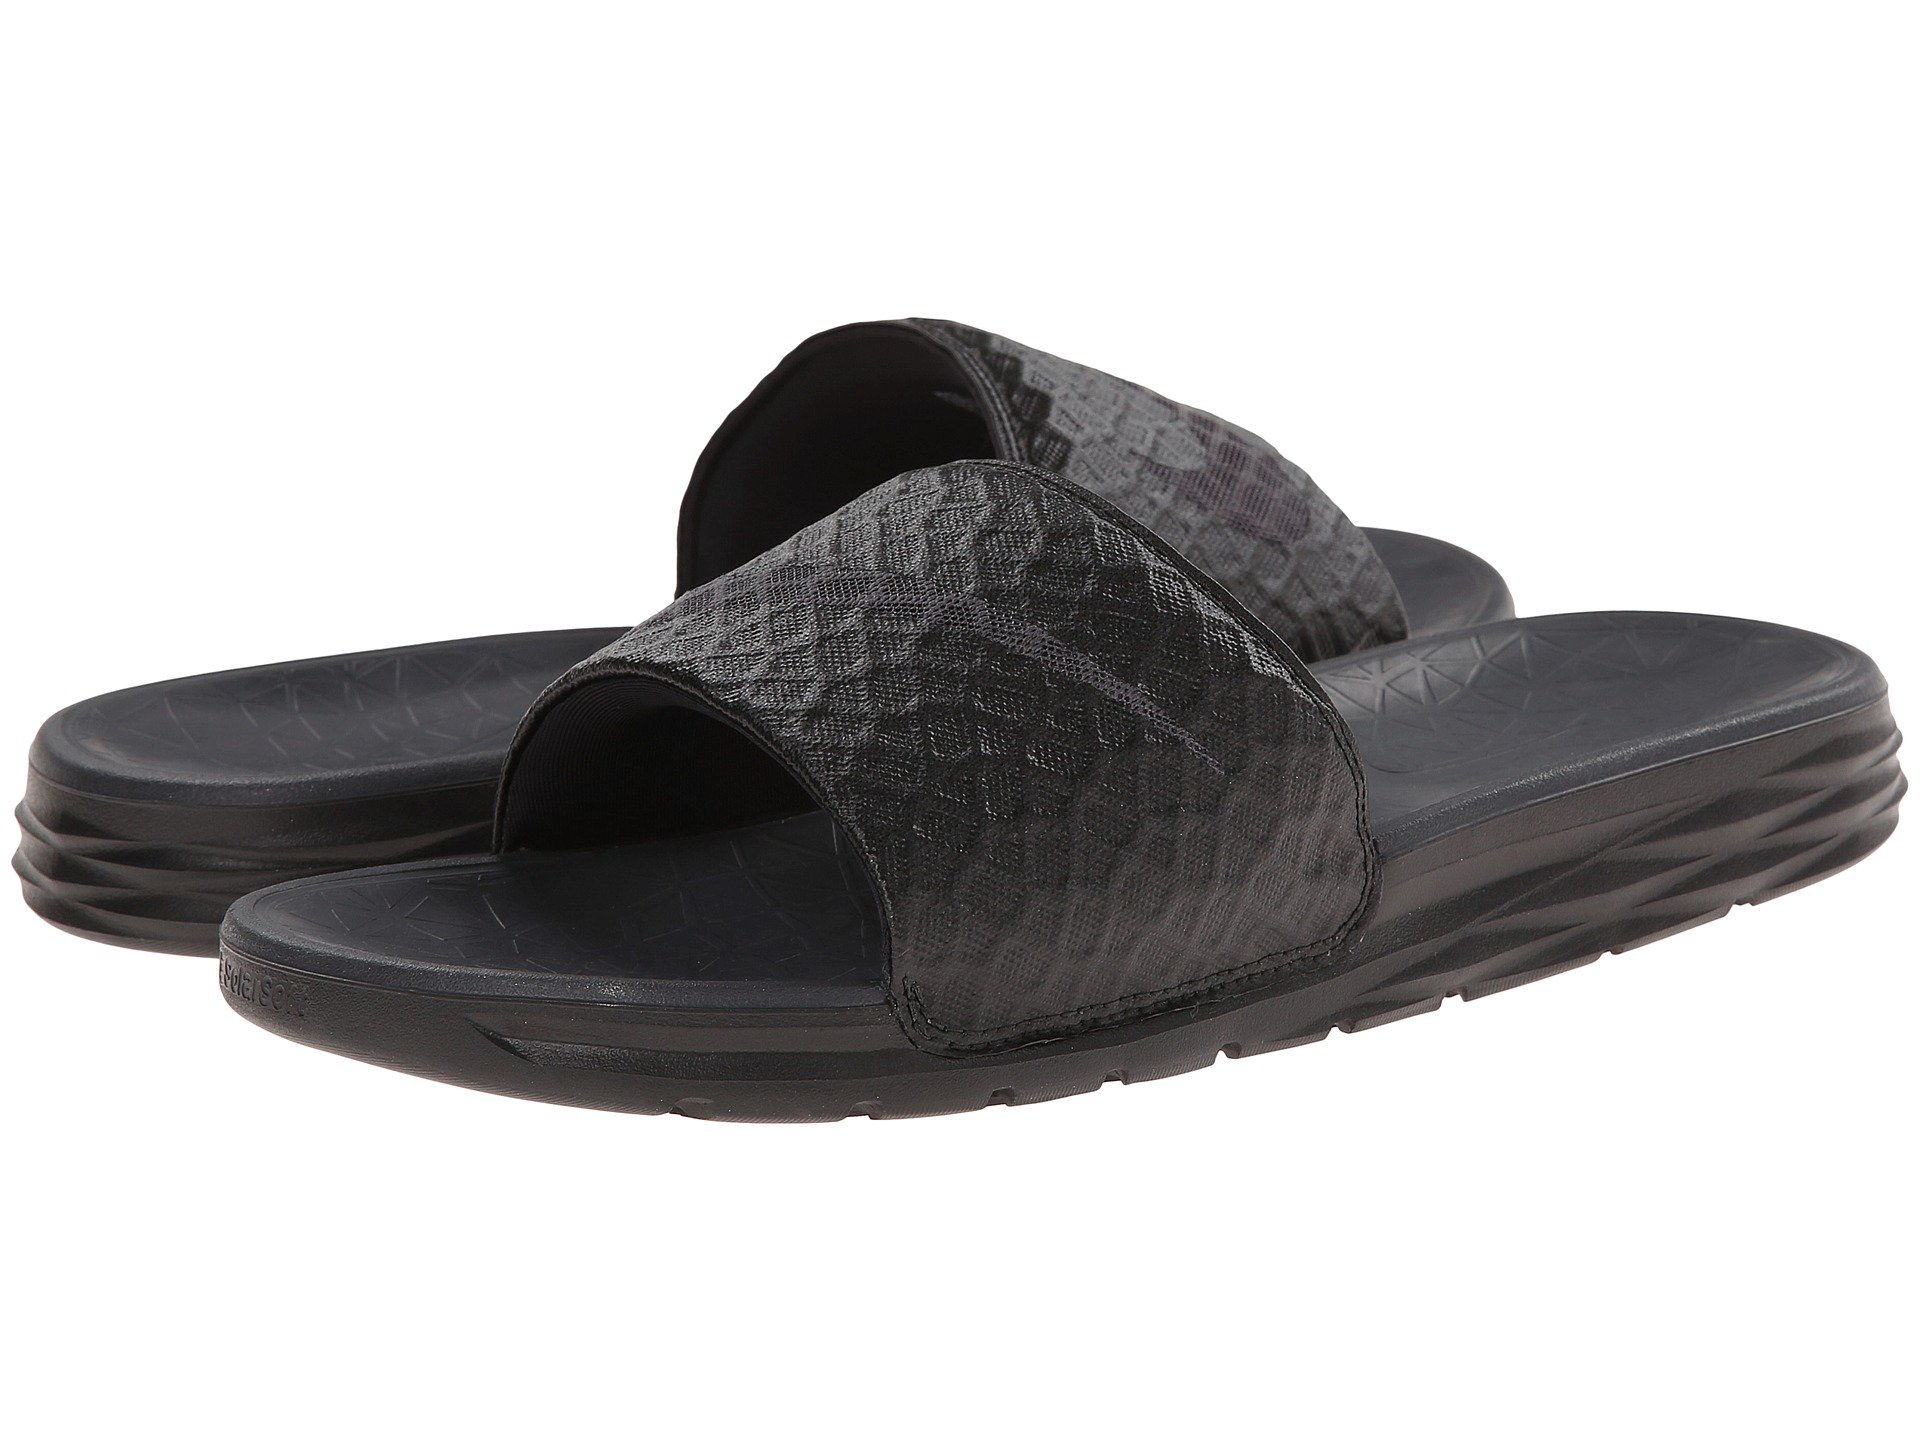 0b92cd40c9a56 Men s Slide Sandals + FREE SHIPPING